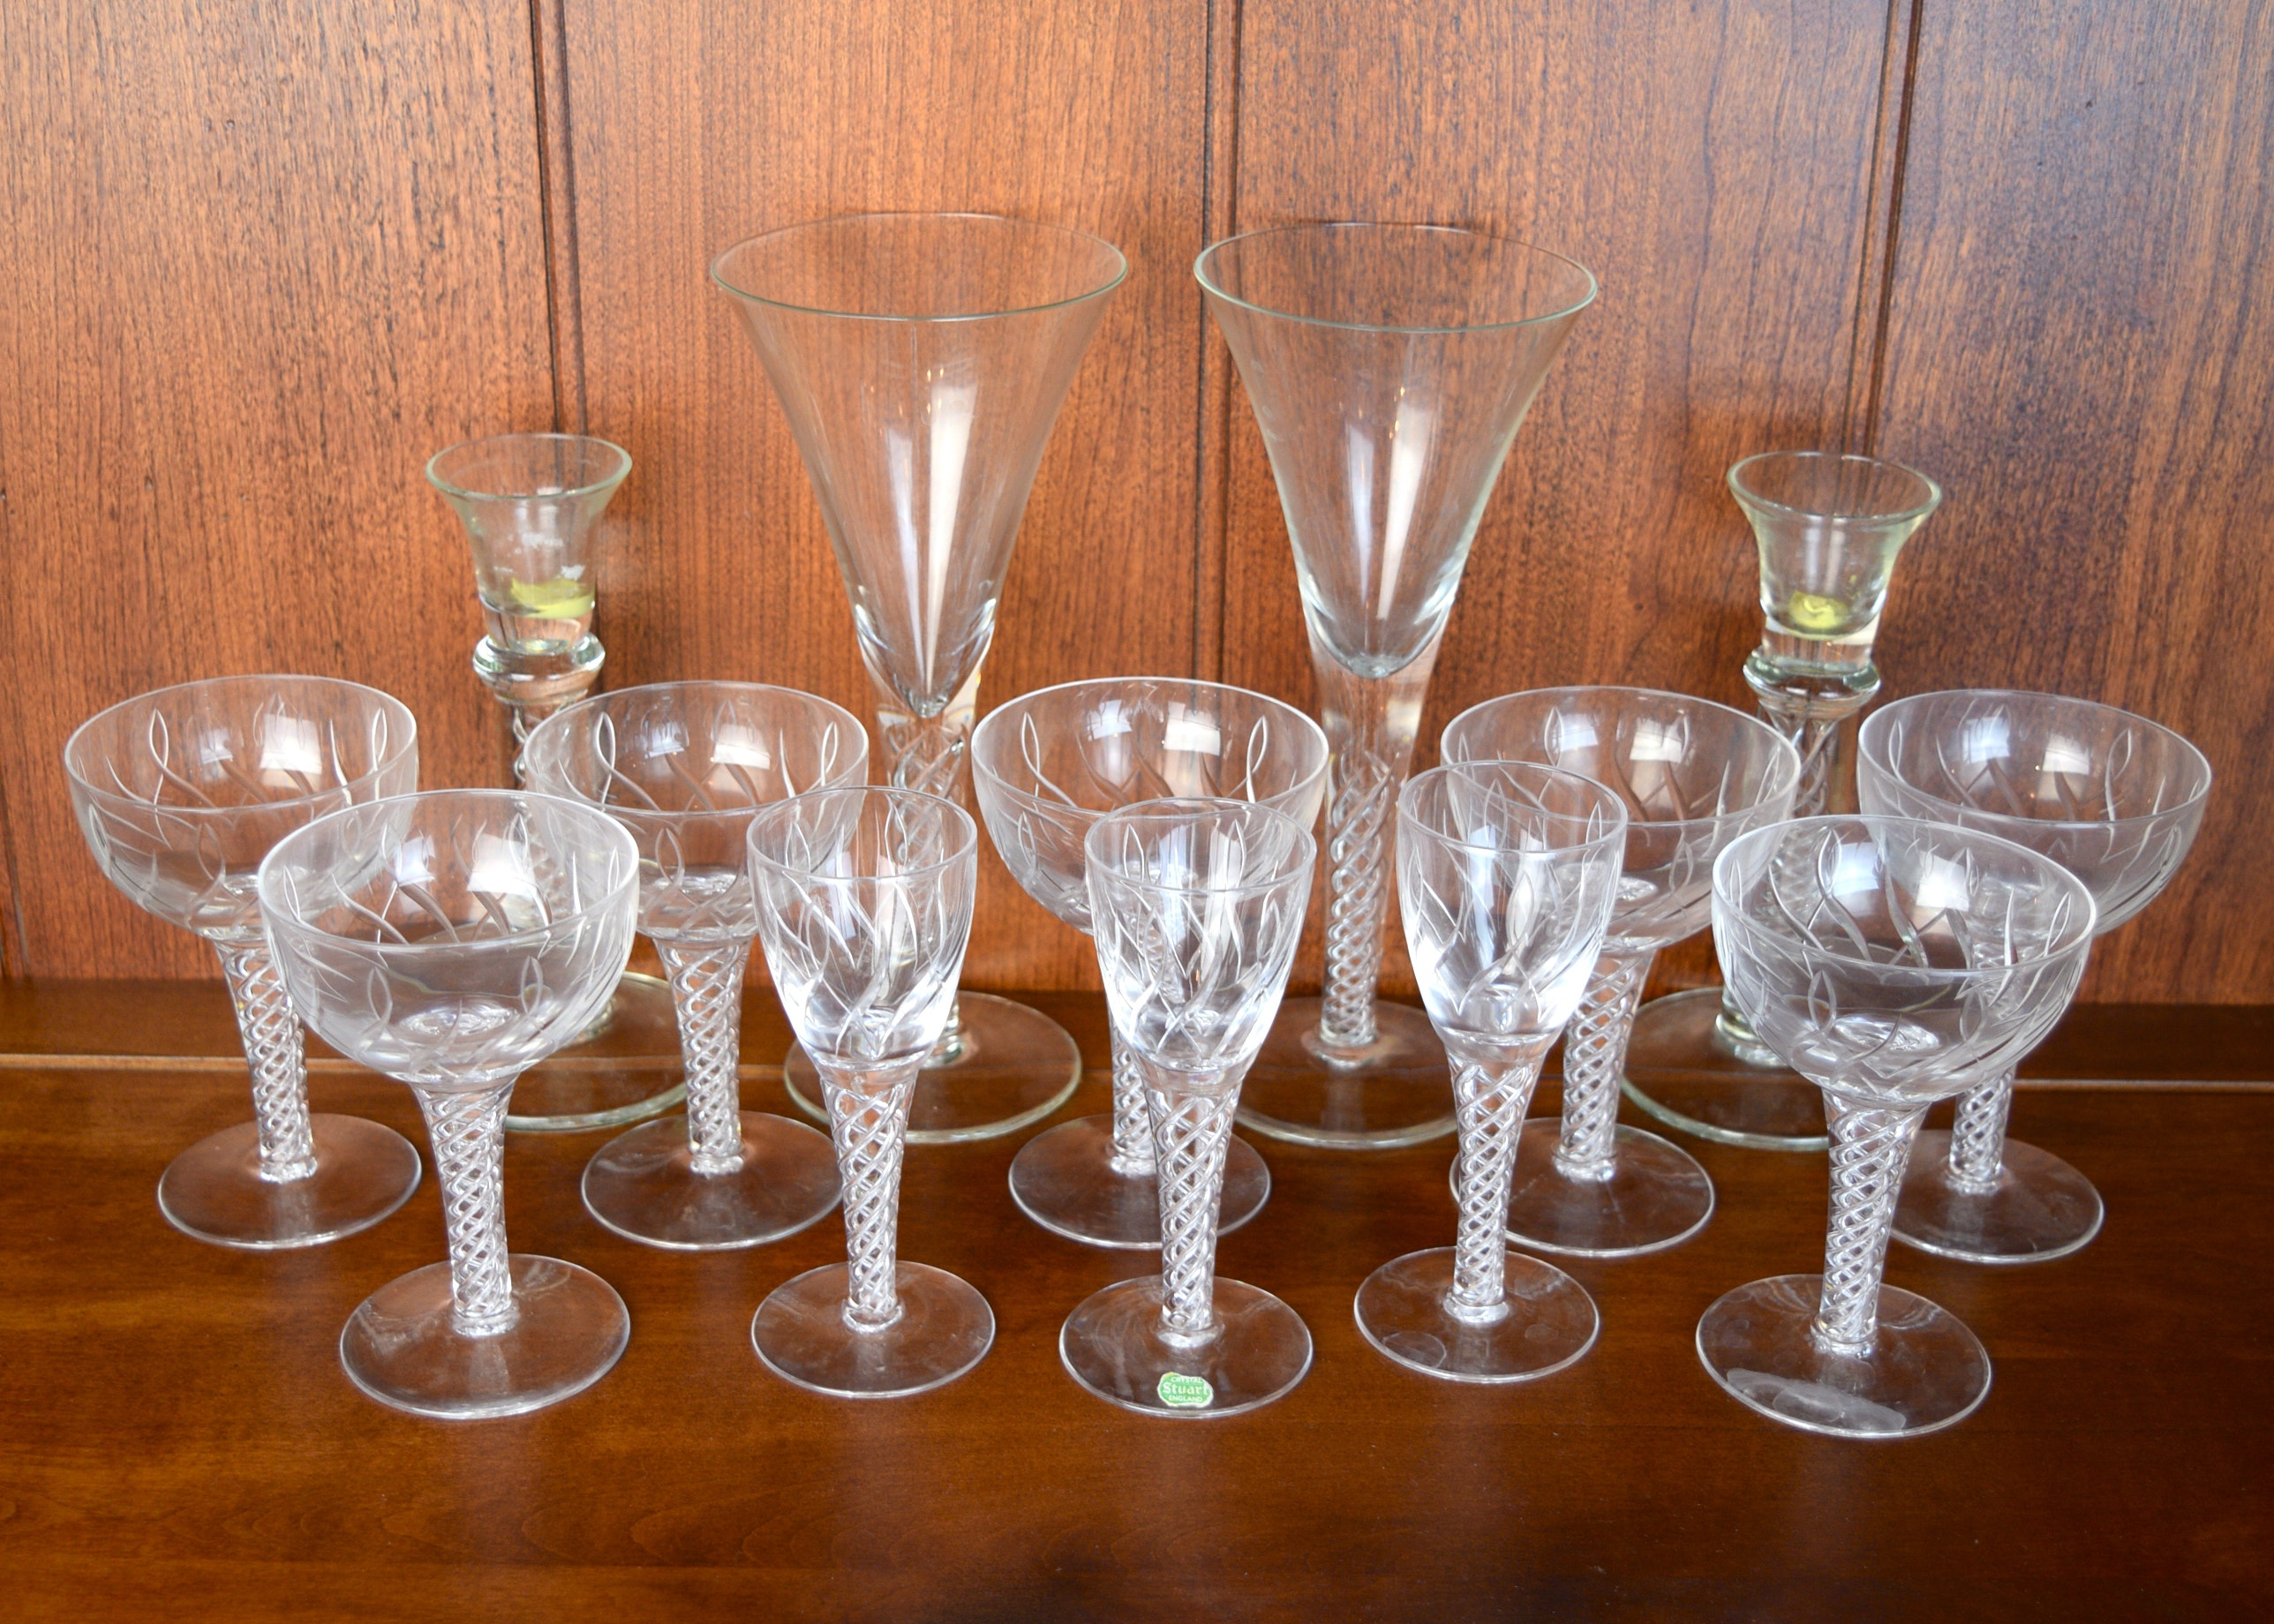 vintage handblown stuart crystal glassware with twisted stems